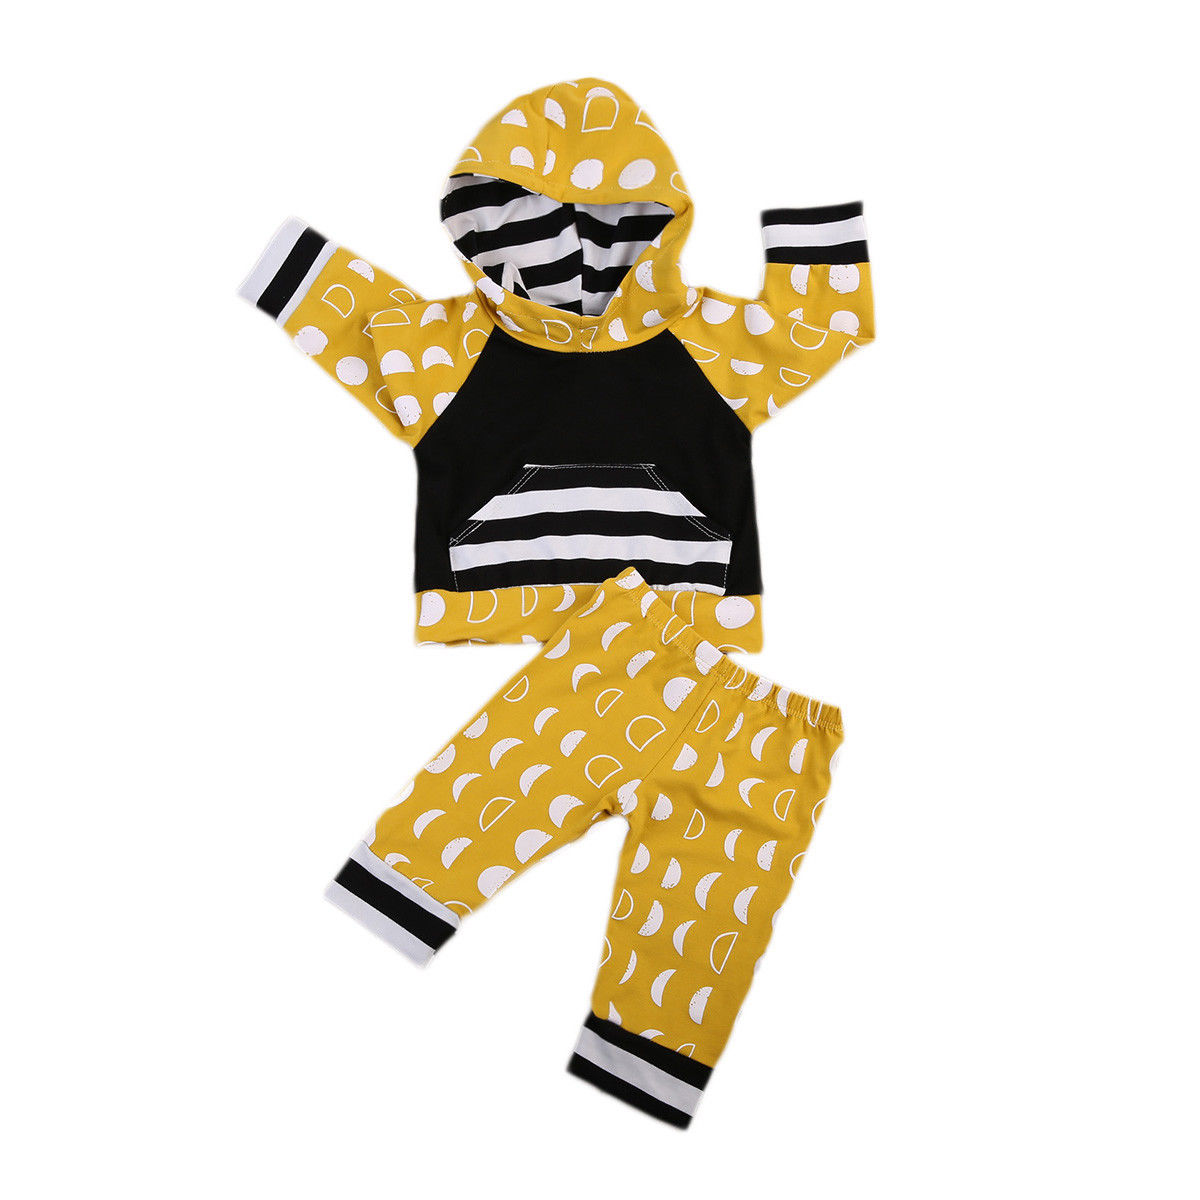 2PCS Baby Clothes Set Cotton Newborn Kids Baby Outfits Boy Girl Hooded Tops+Print Pants Clothing Sets Yellow Autumn